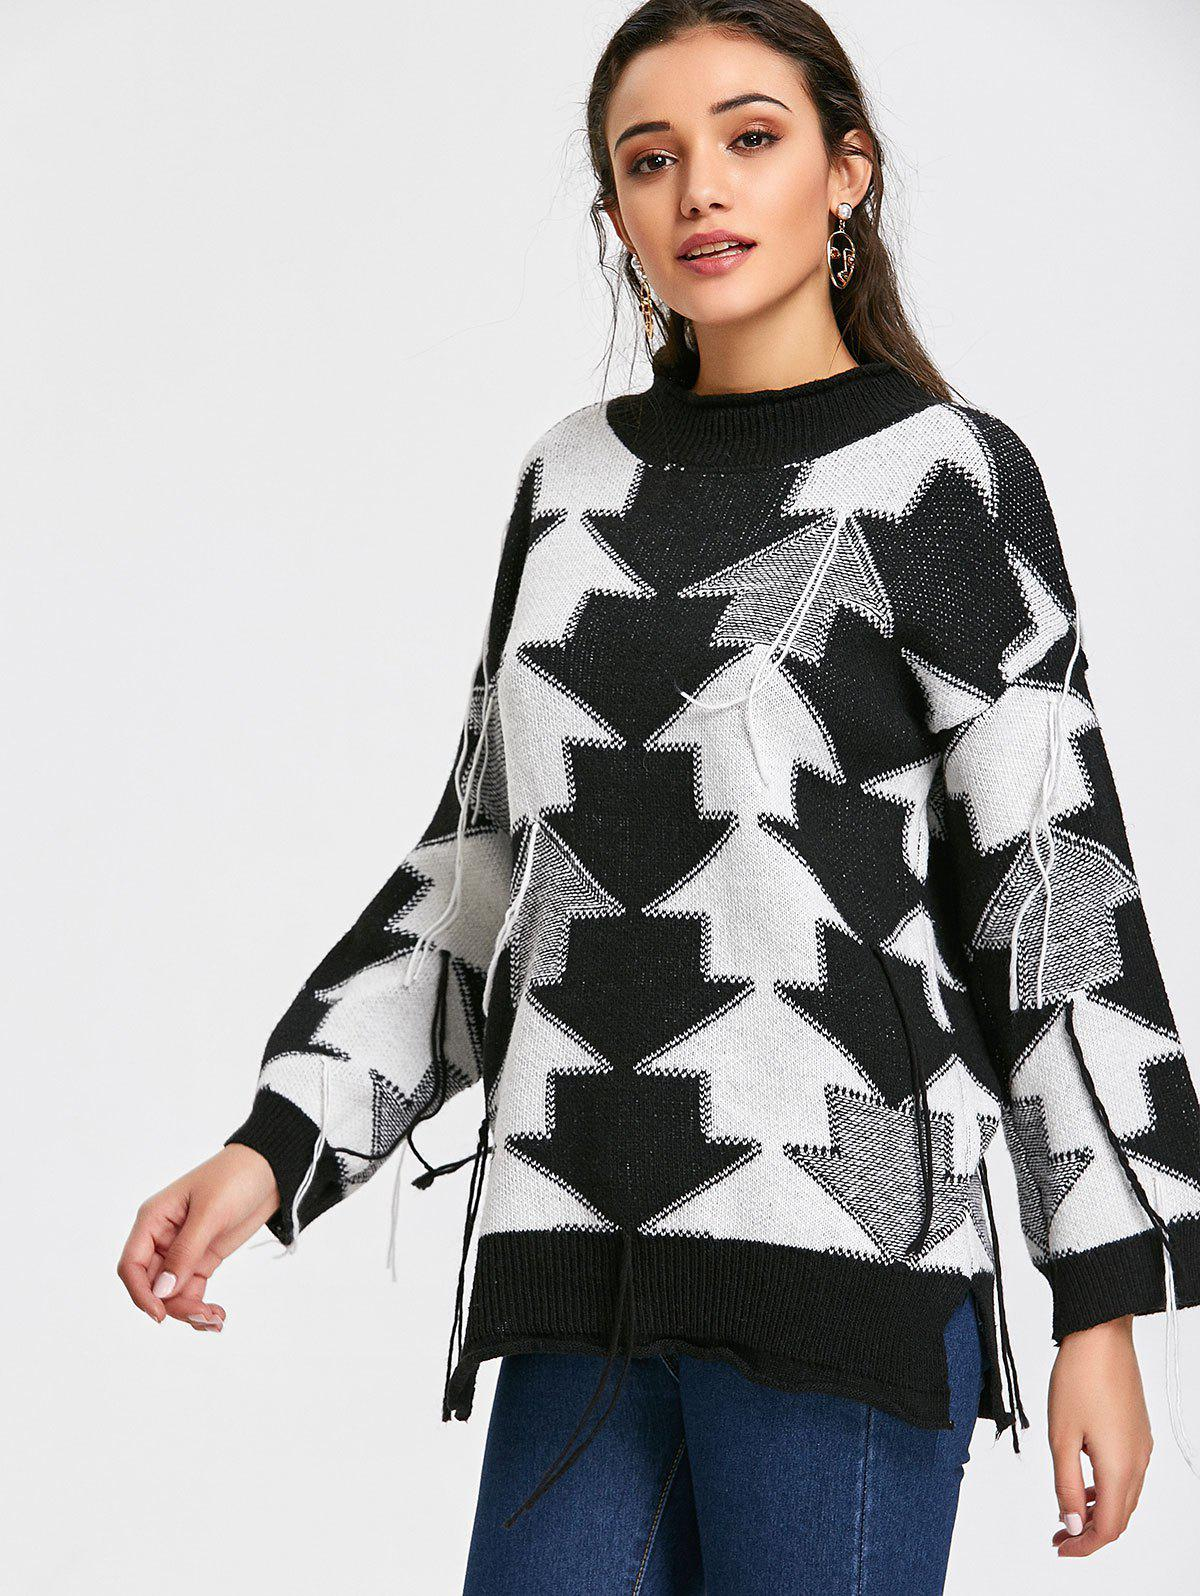 Pullover Contrasting Arrow Tassels Sweater - BLACK ONE SIZE